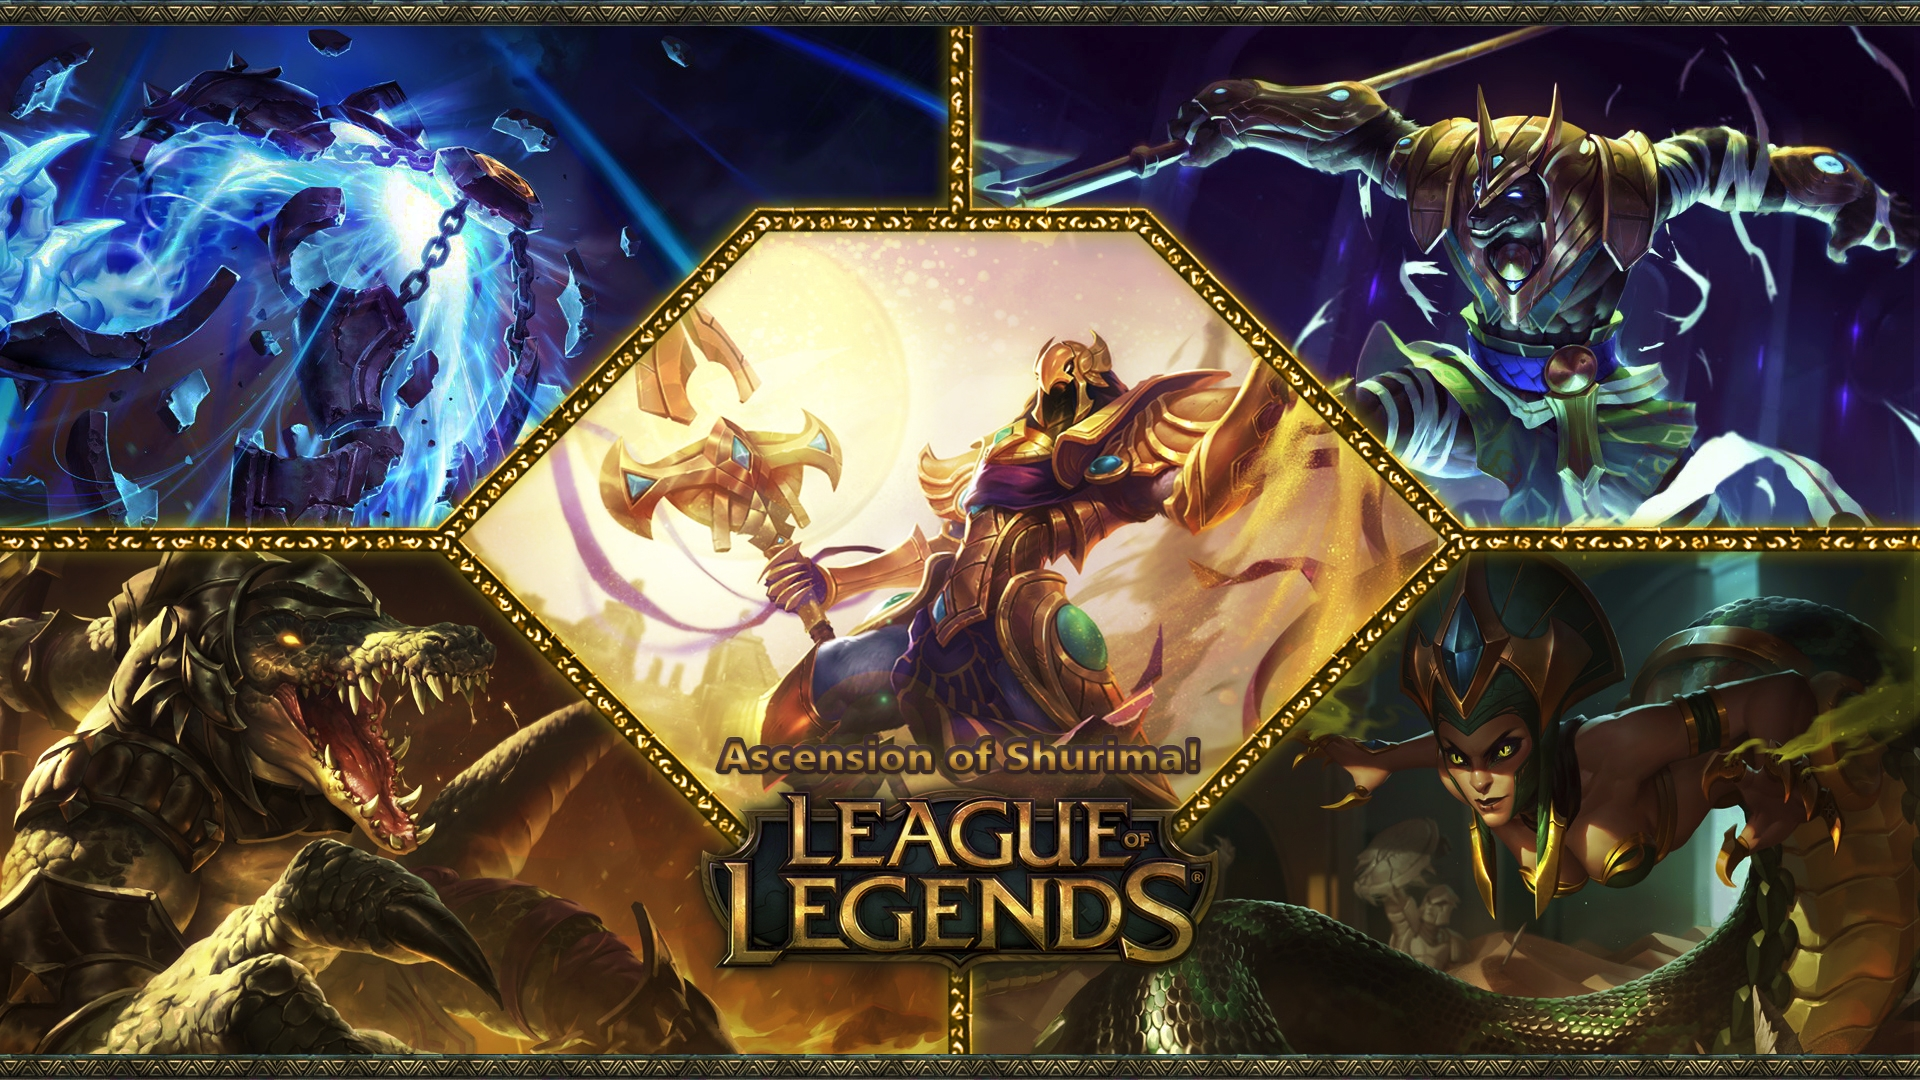 1440x900 League Of Legends Game Poster 1440x900 Resolution Hd 4k